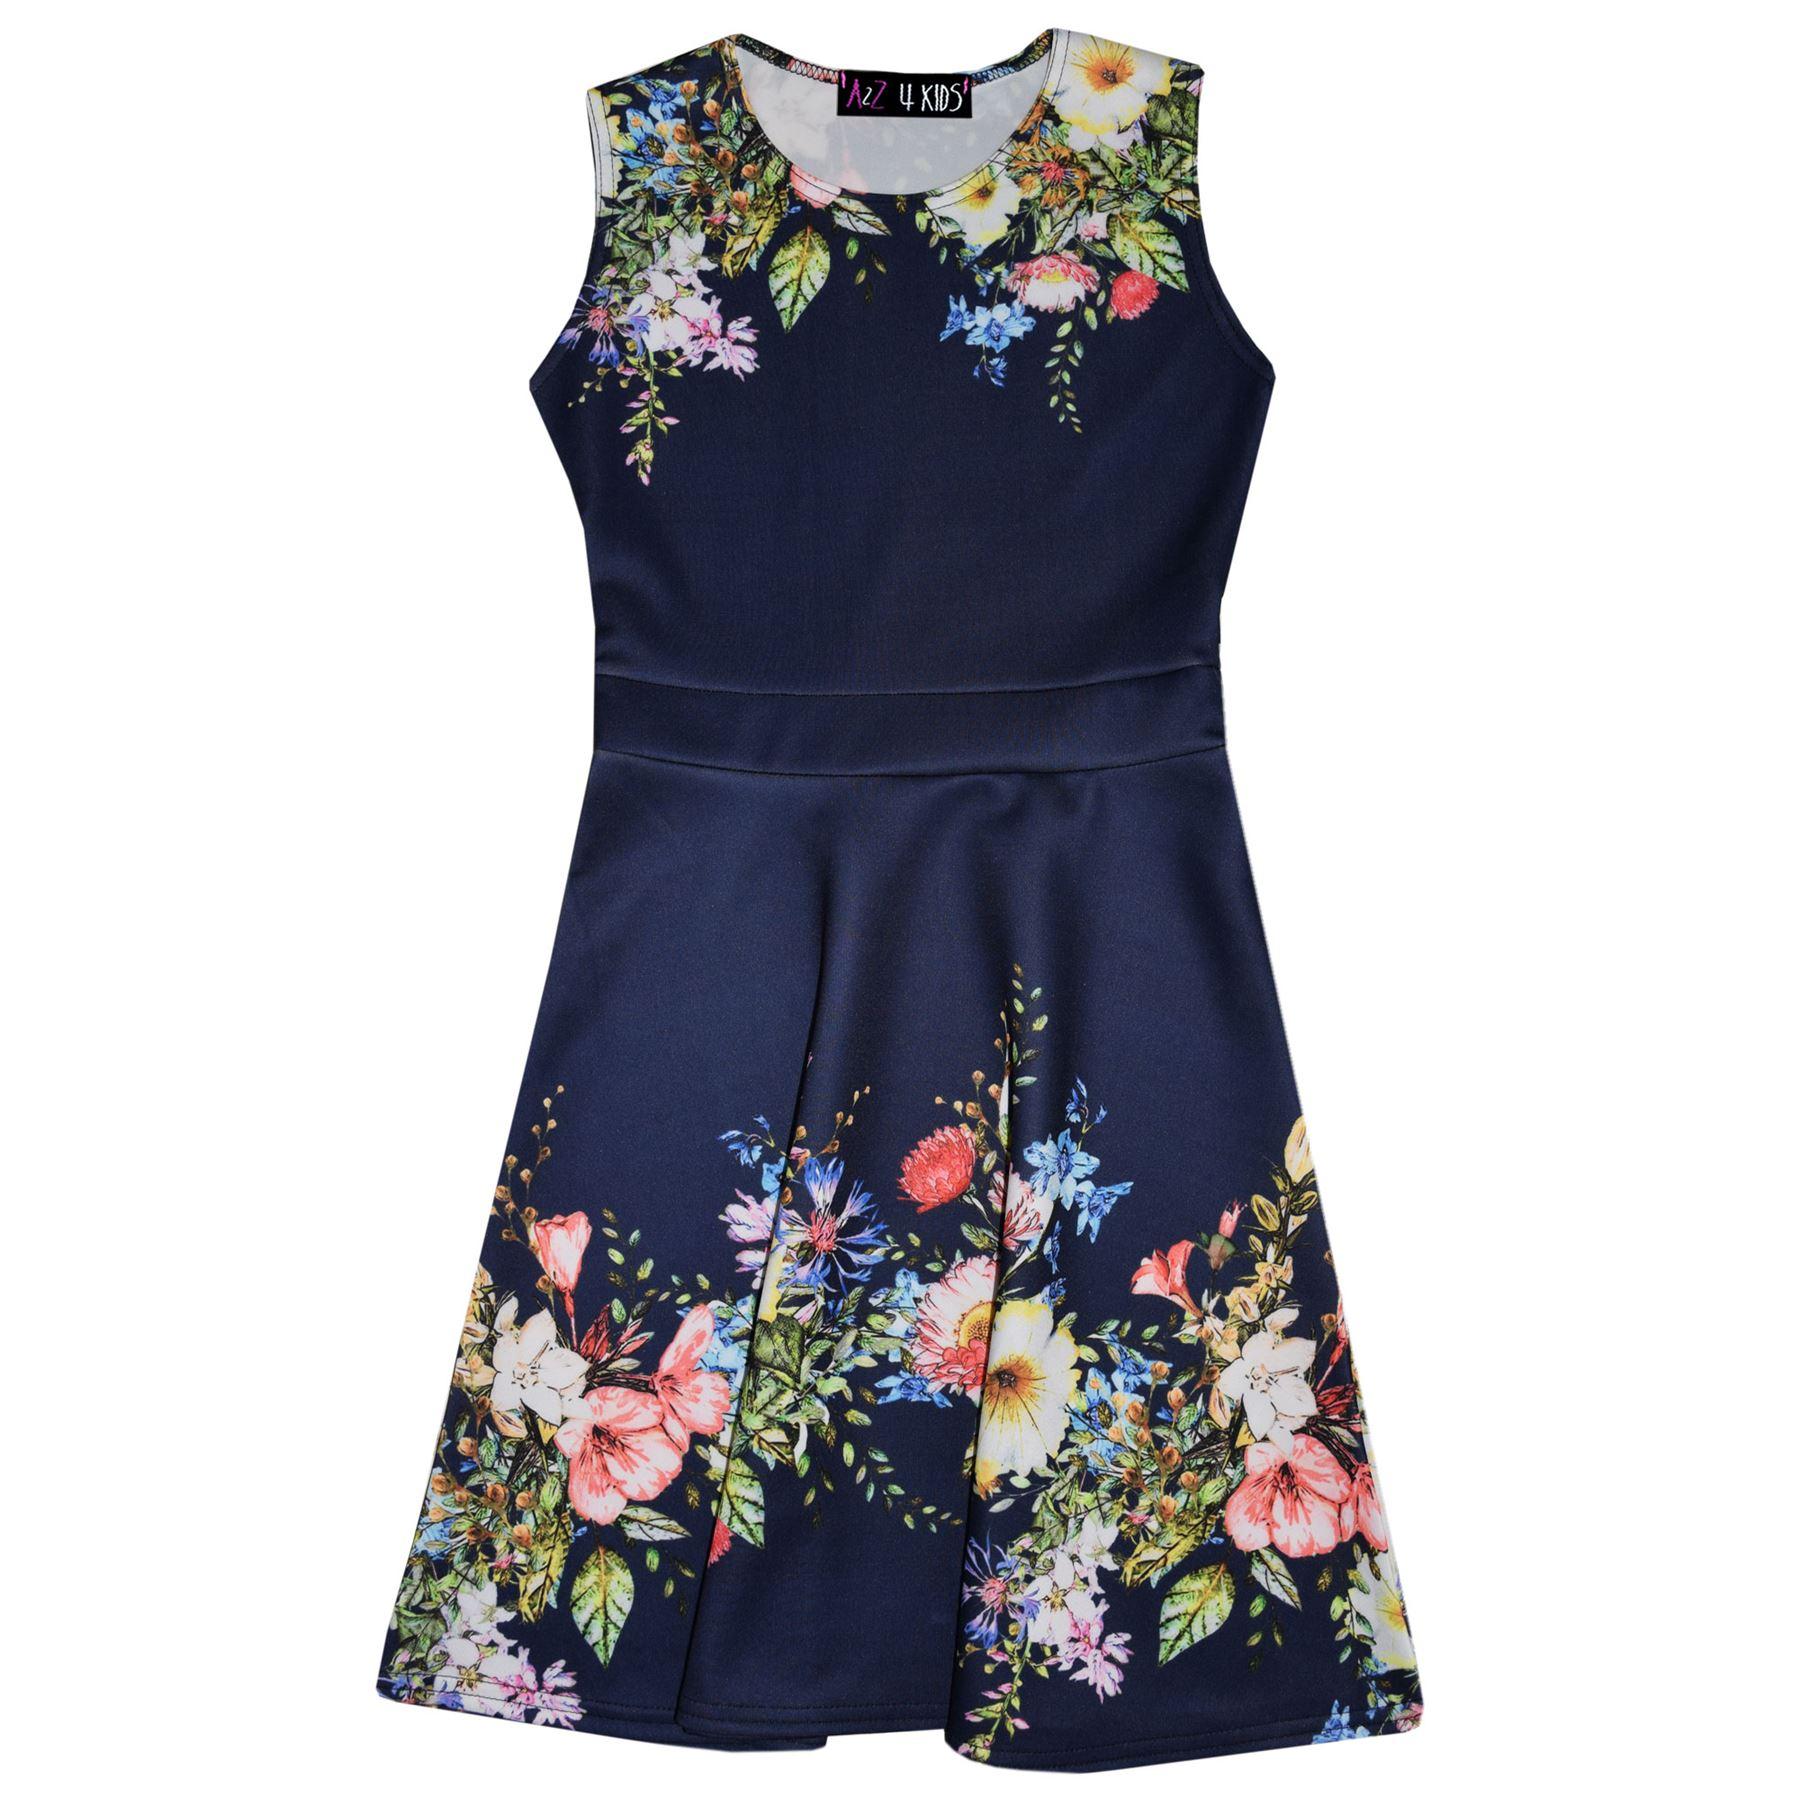 Kids Girls Skater Dress Floral Navy Summer Party Fashion Dresses New Age 2-8 Yr